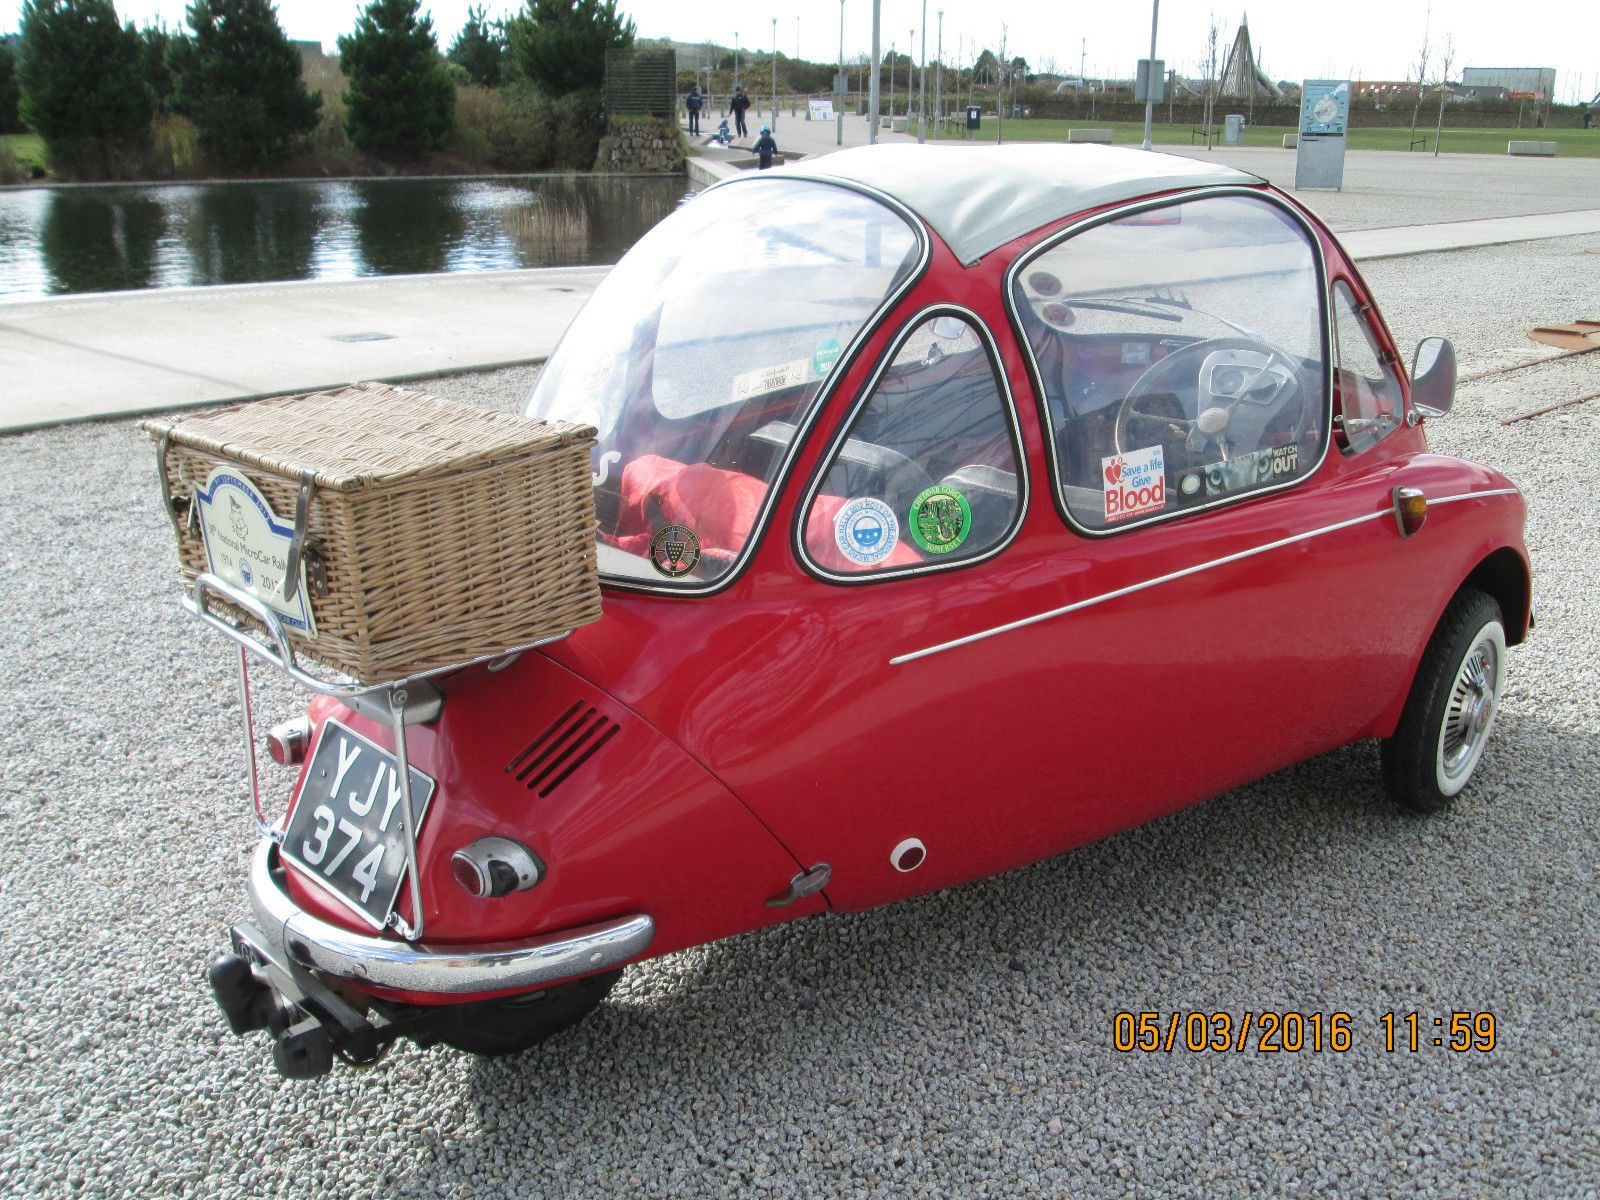 Heinkel Trojan Bubble Car In Cars Motorcycles Vehicles